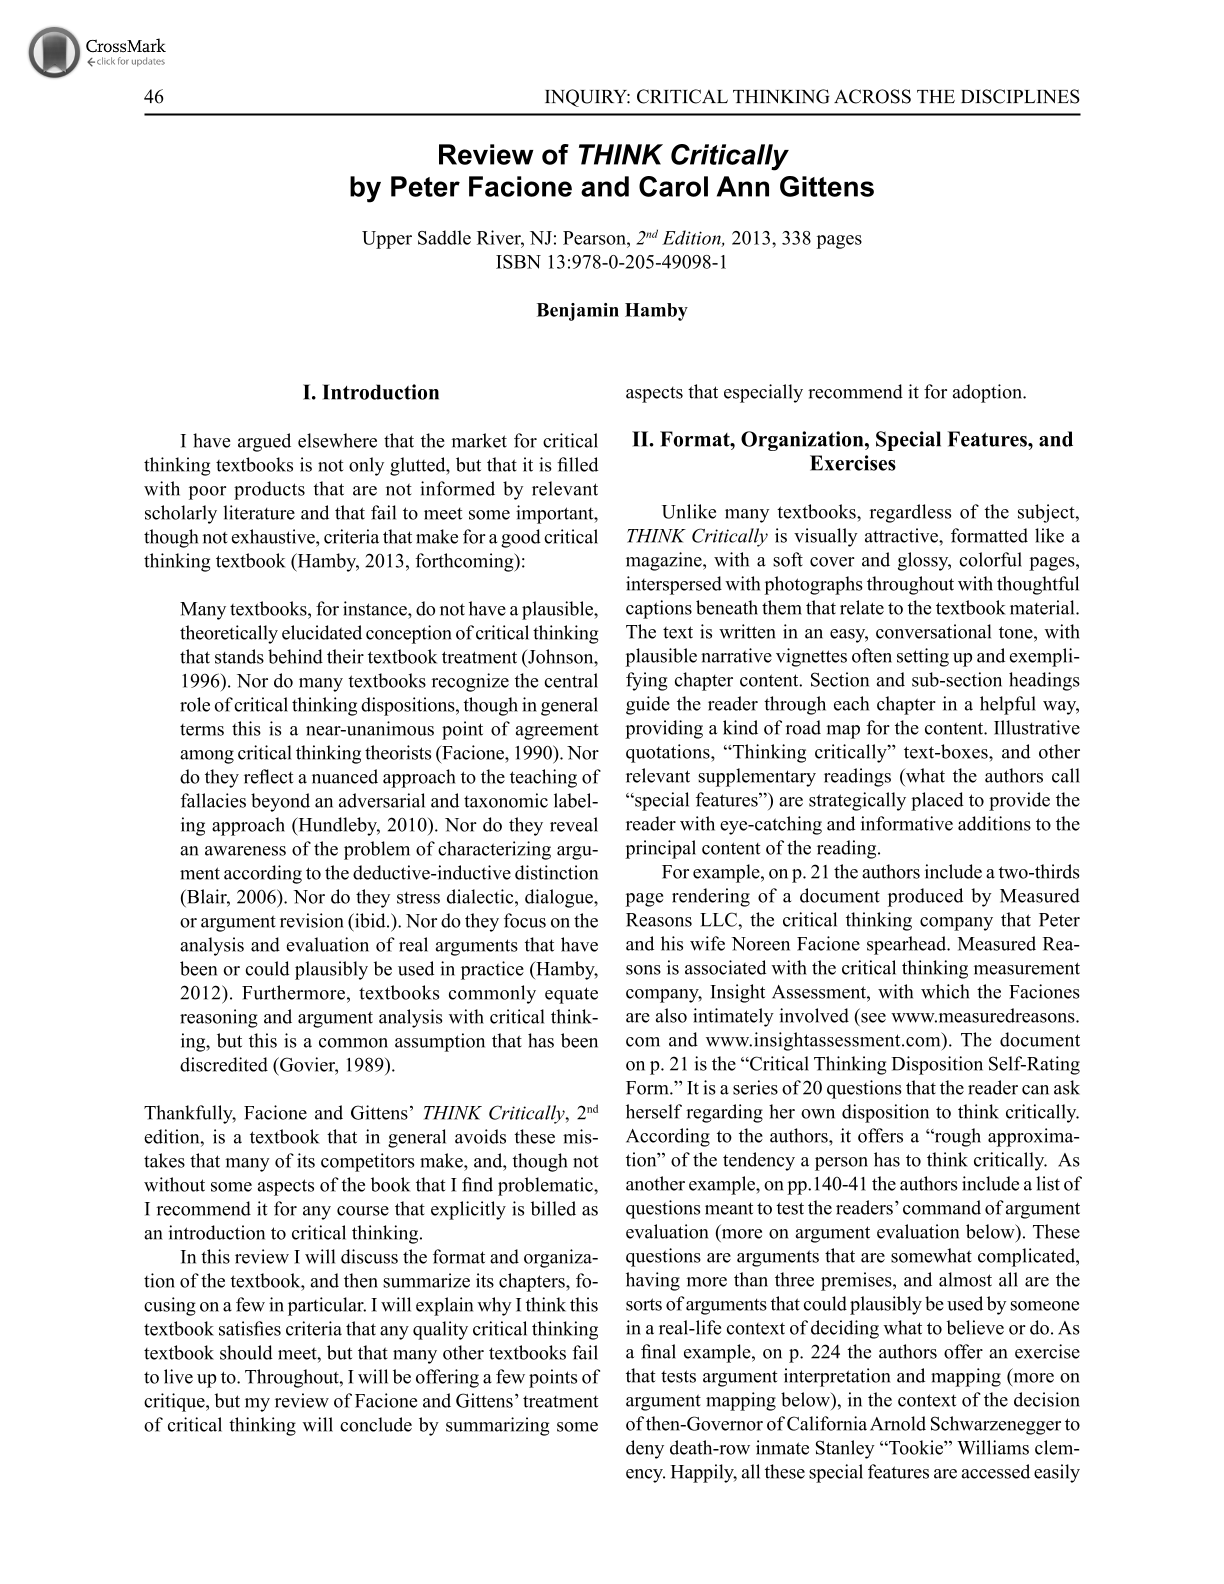 critical thinking dispositions in baccalaureate nursing students Relationships among bilingualism, critical thinking ability, and critical thinking disposition of baccalaureate nursing students item preview.